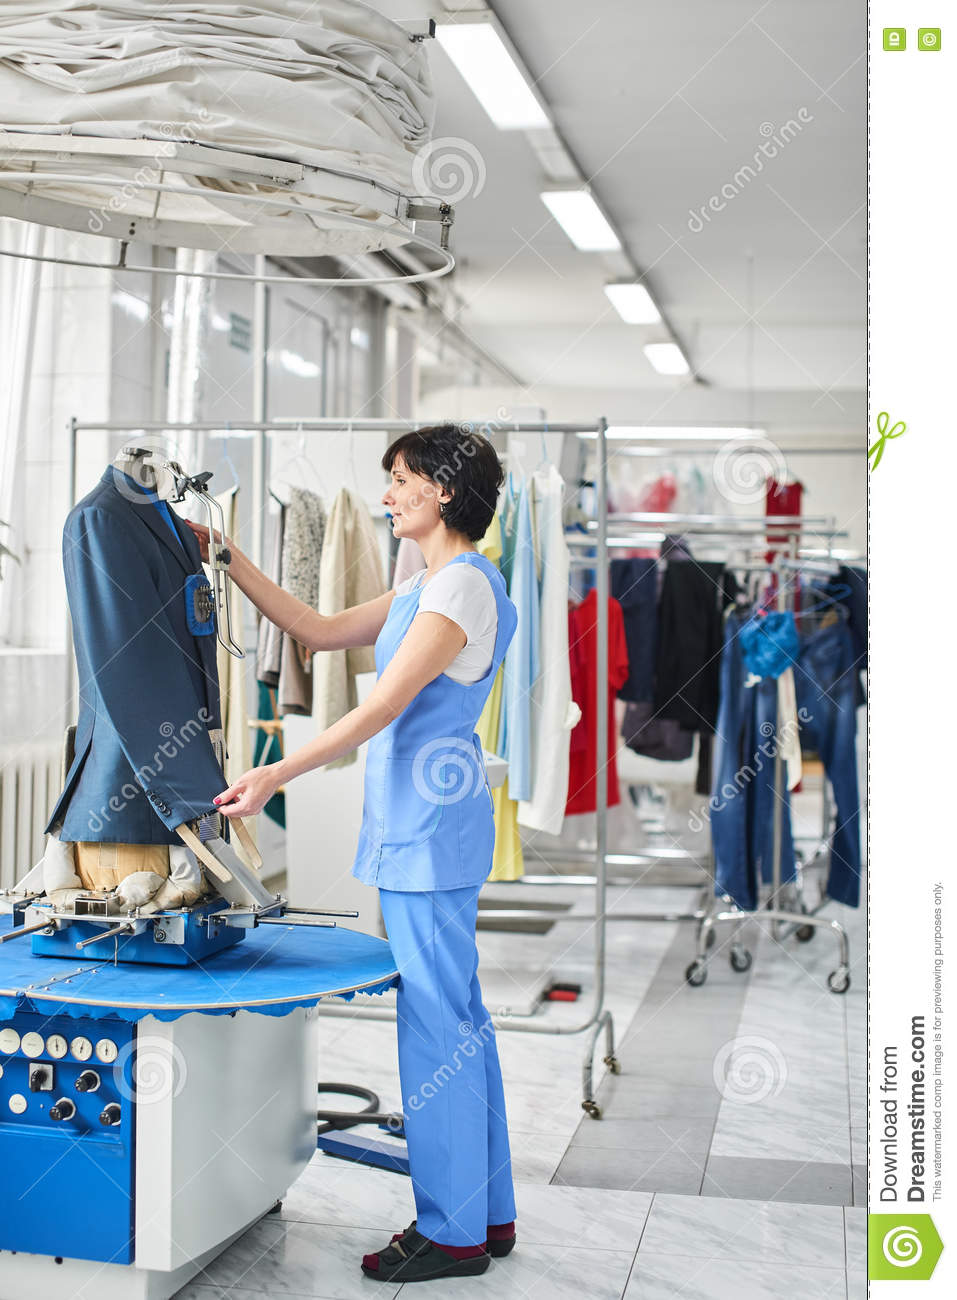 Dry Cleaning Laundry Line Icons Launderette Service